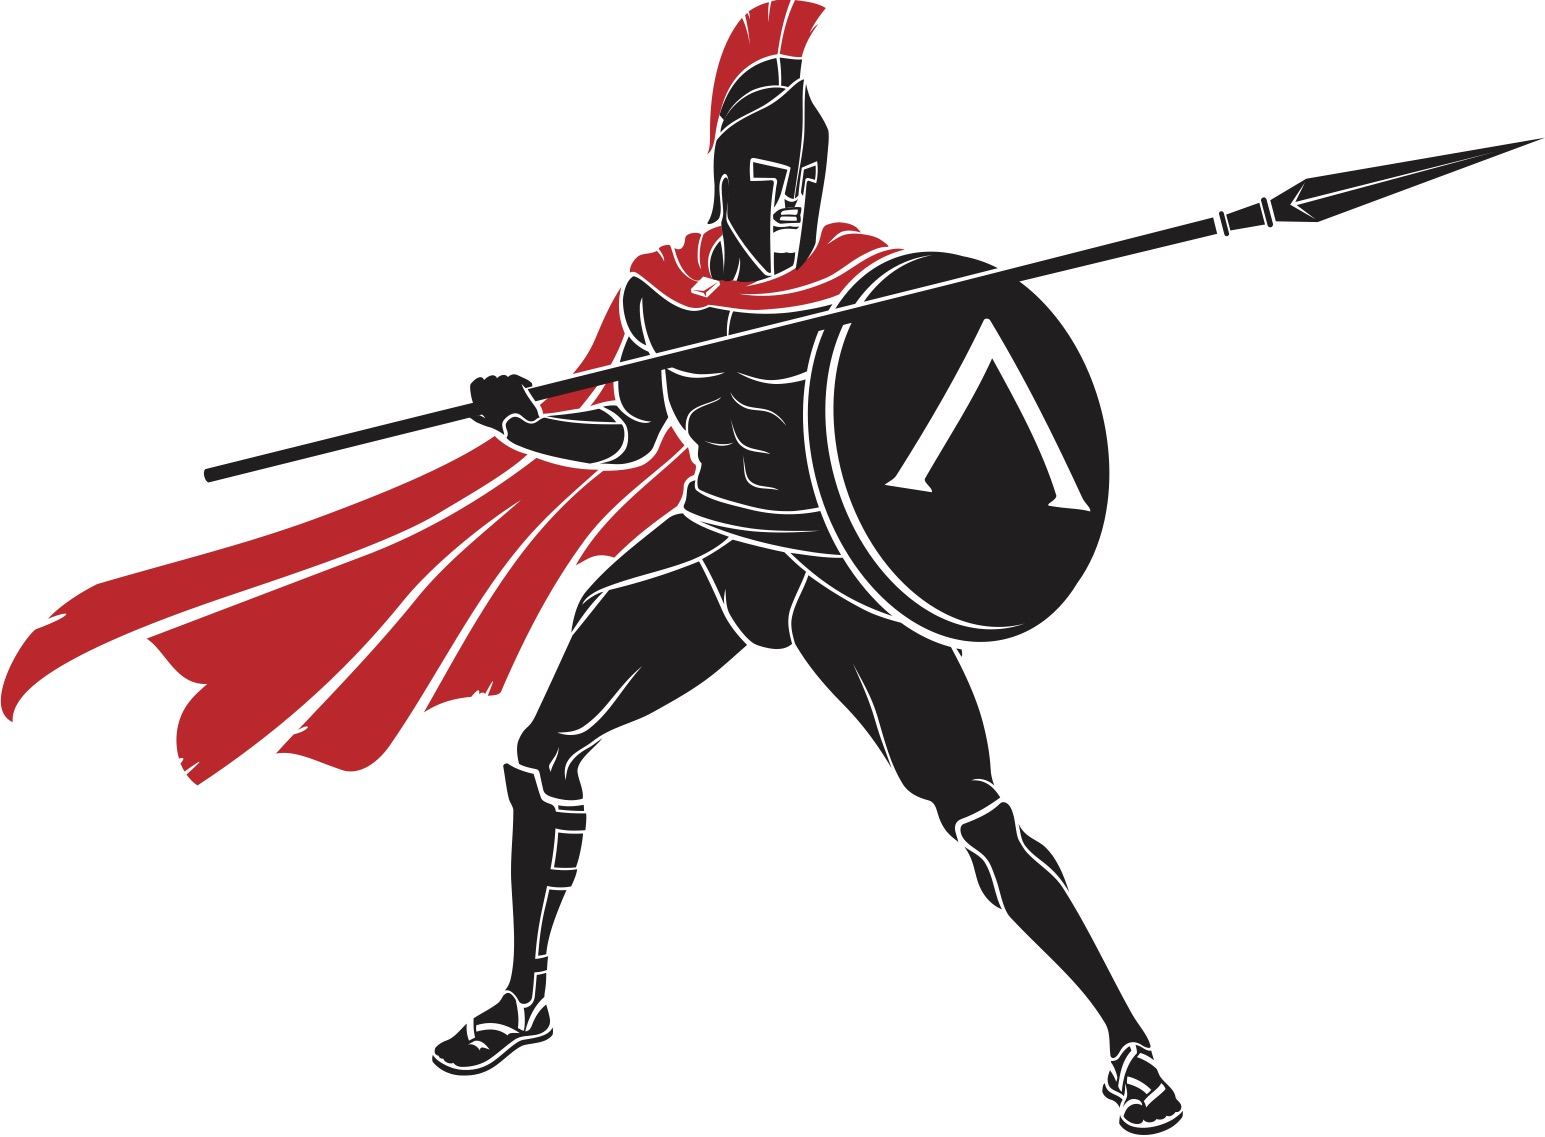 Spartan Warrior Clipart at GetDrawings.com.